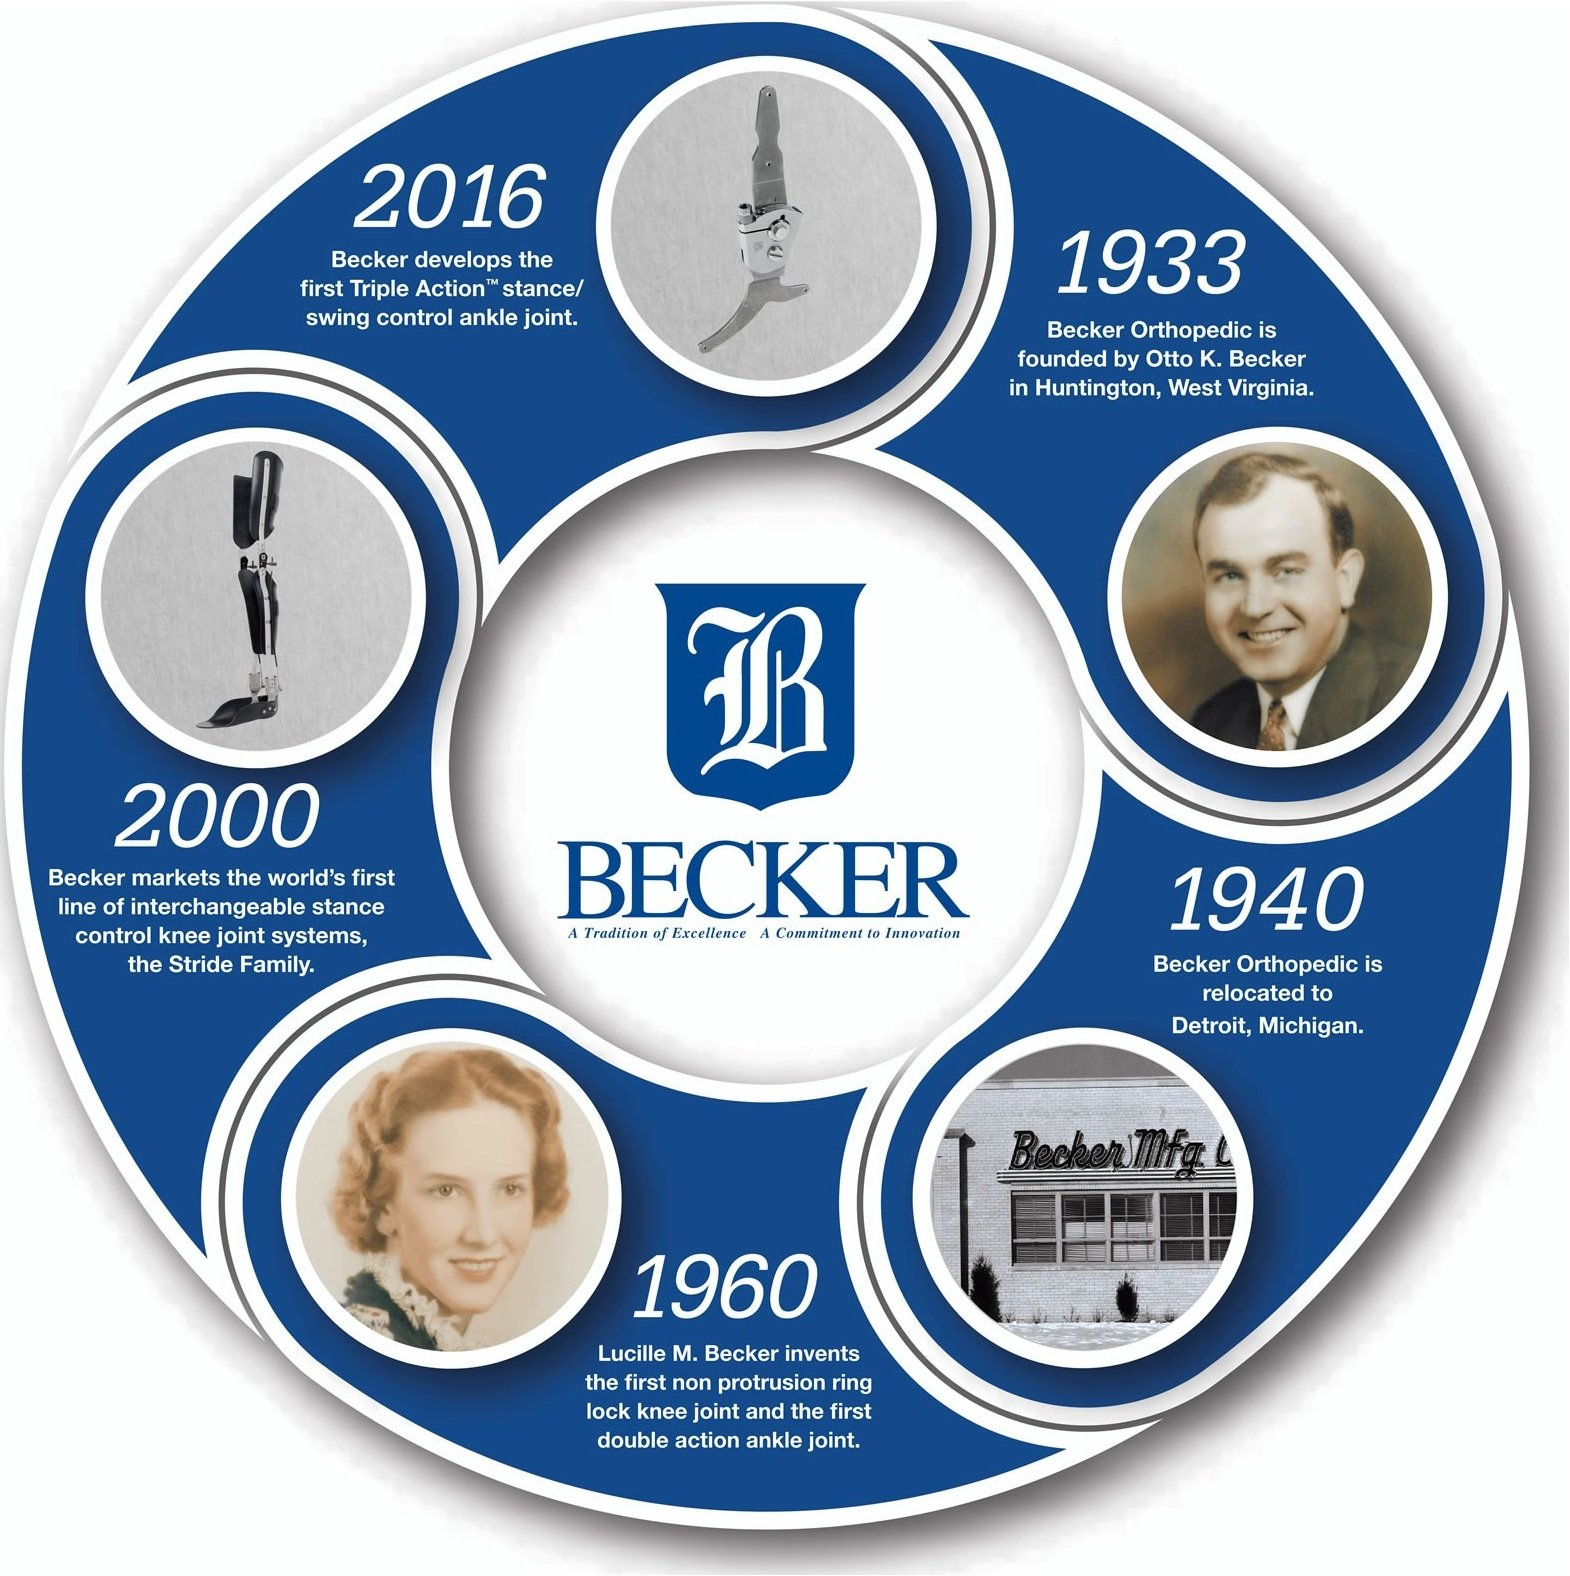 About Us - Becker Orthopedic